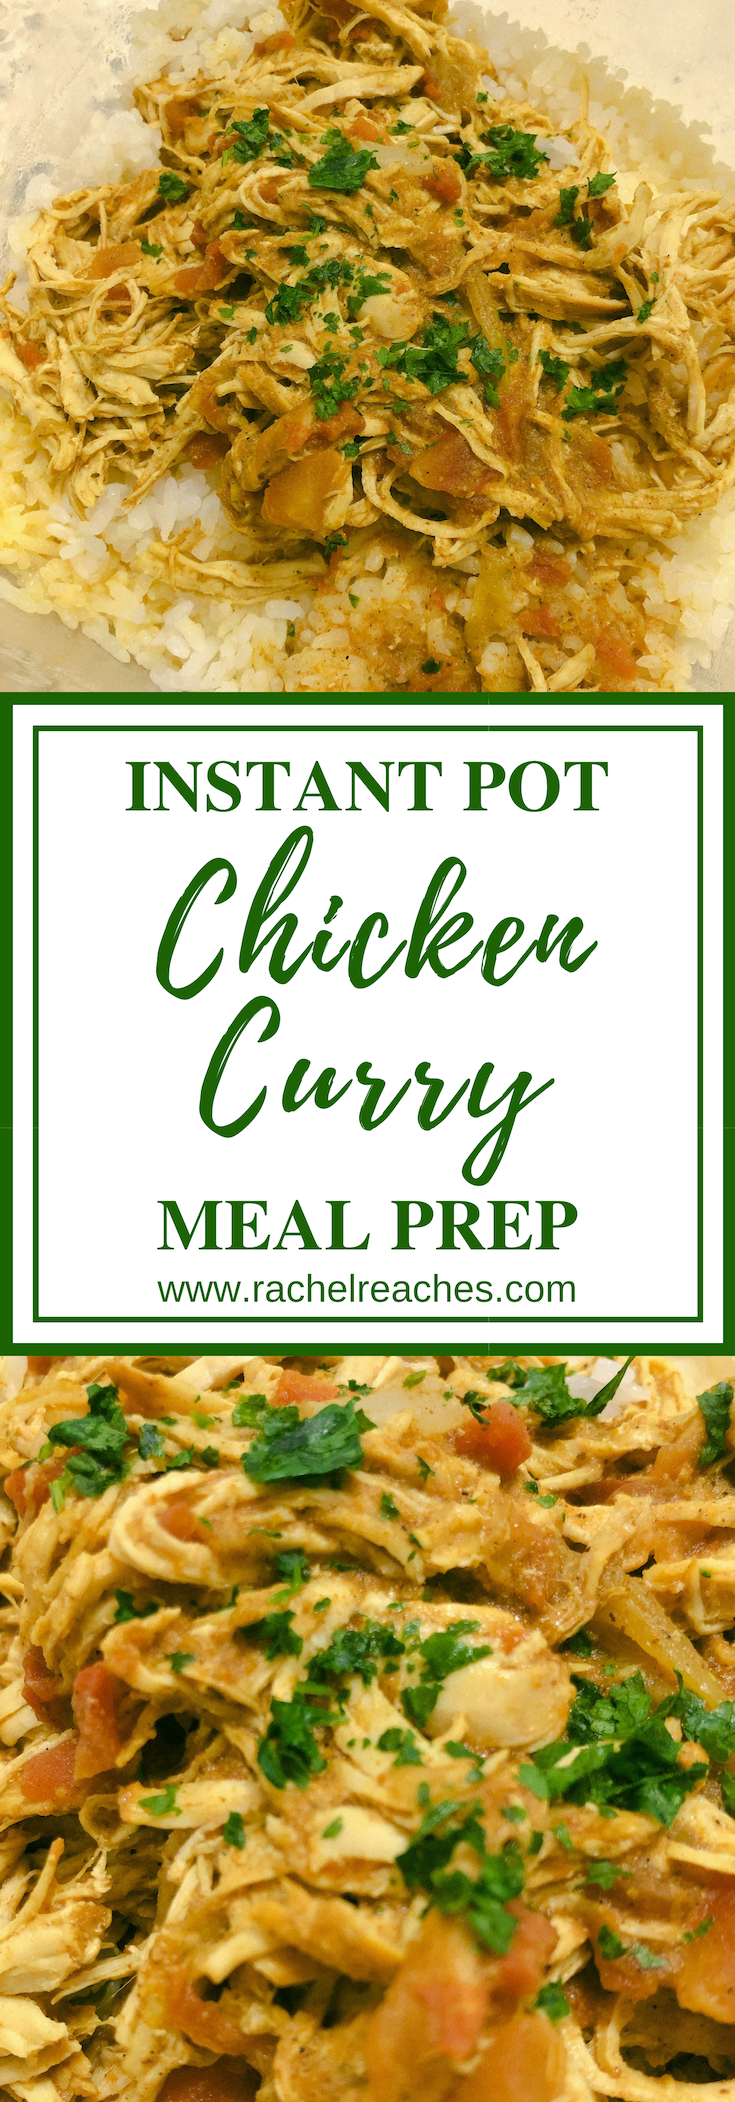 Instant Pot Chicken Curry Pin - Healthy Eating.png